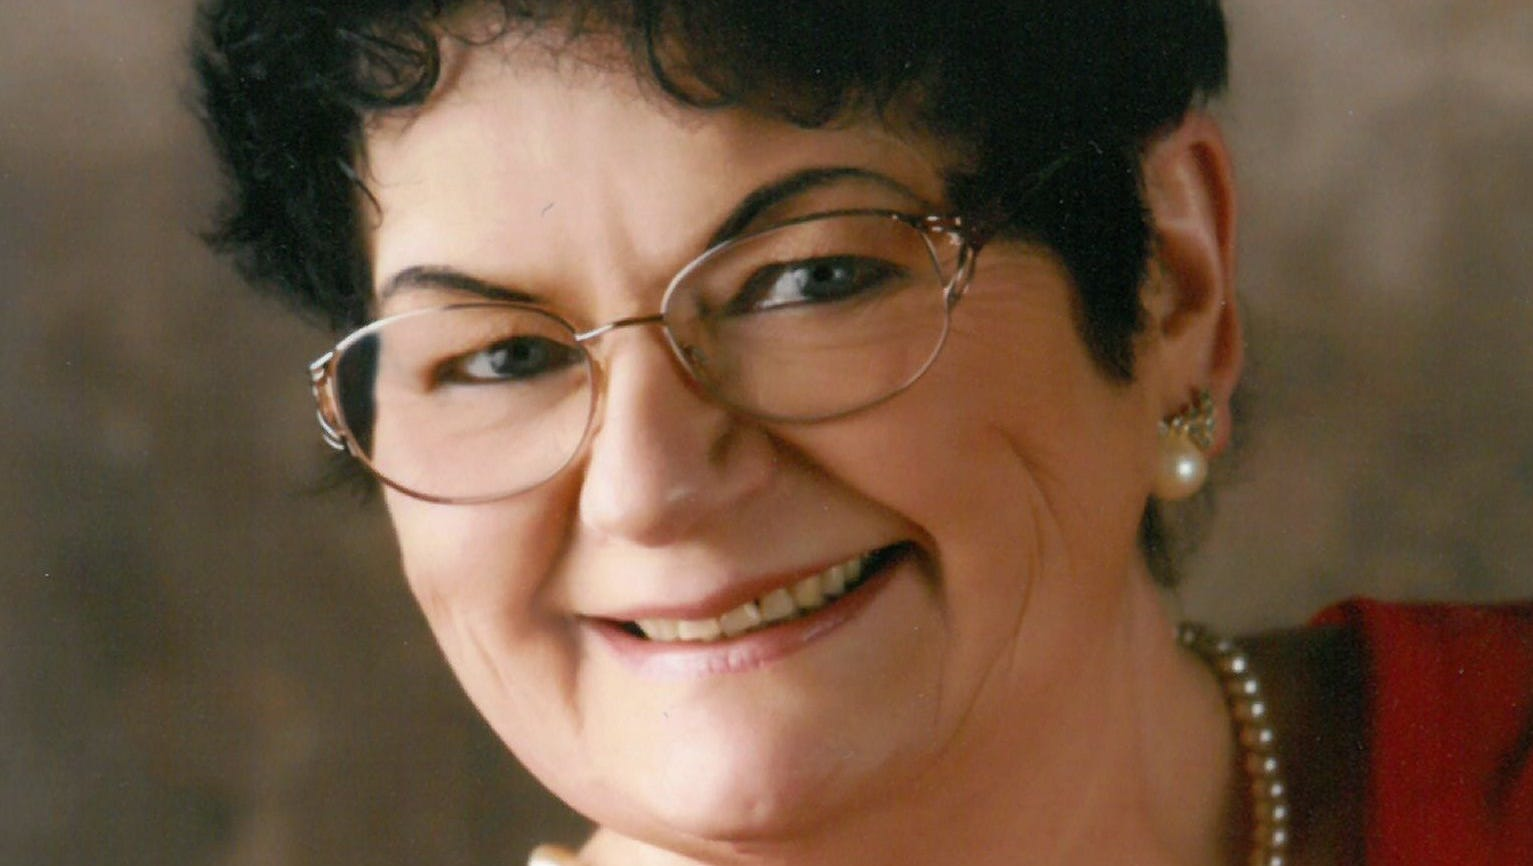 Norma Czarnik: She counseled teens to share their feelings. When she died, they shared her impact on them